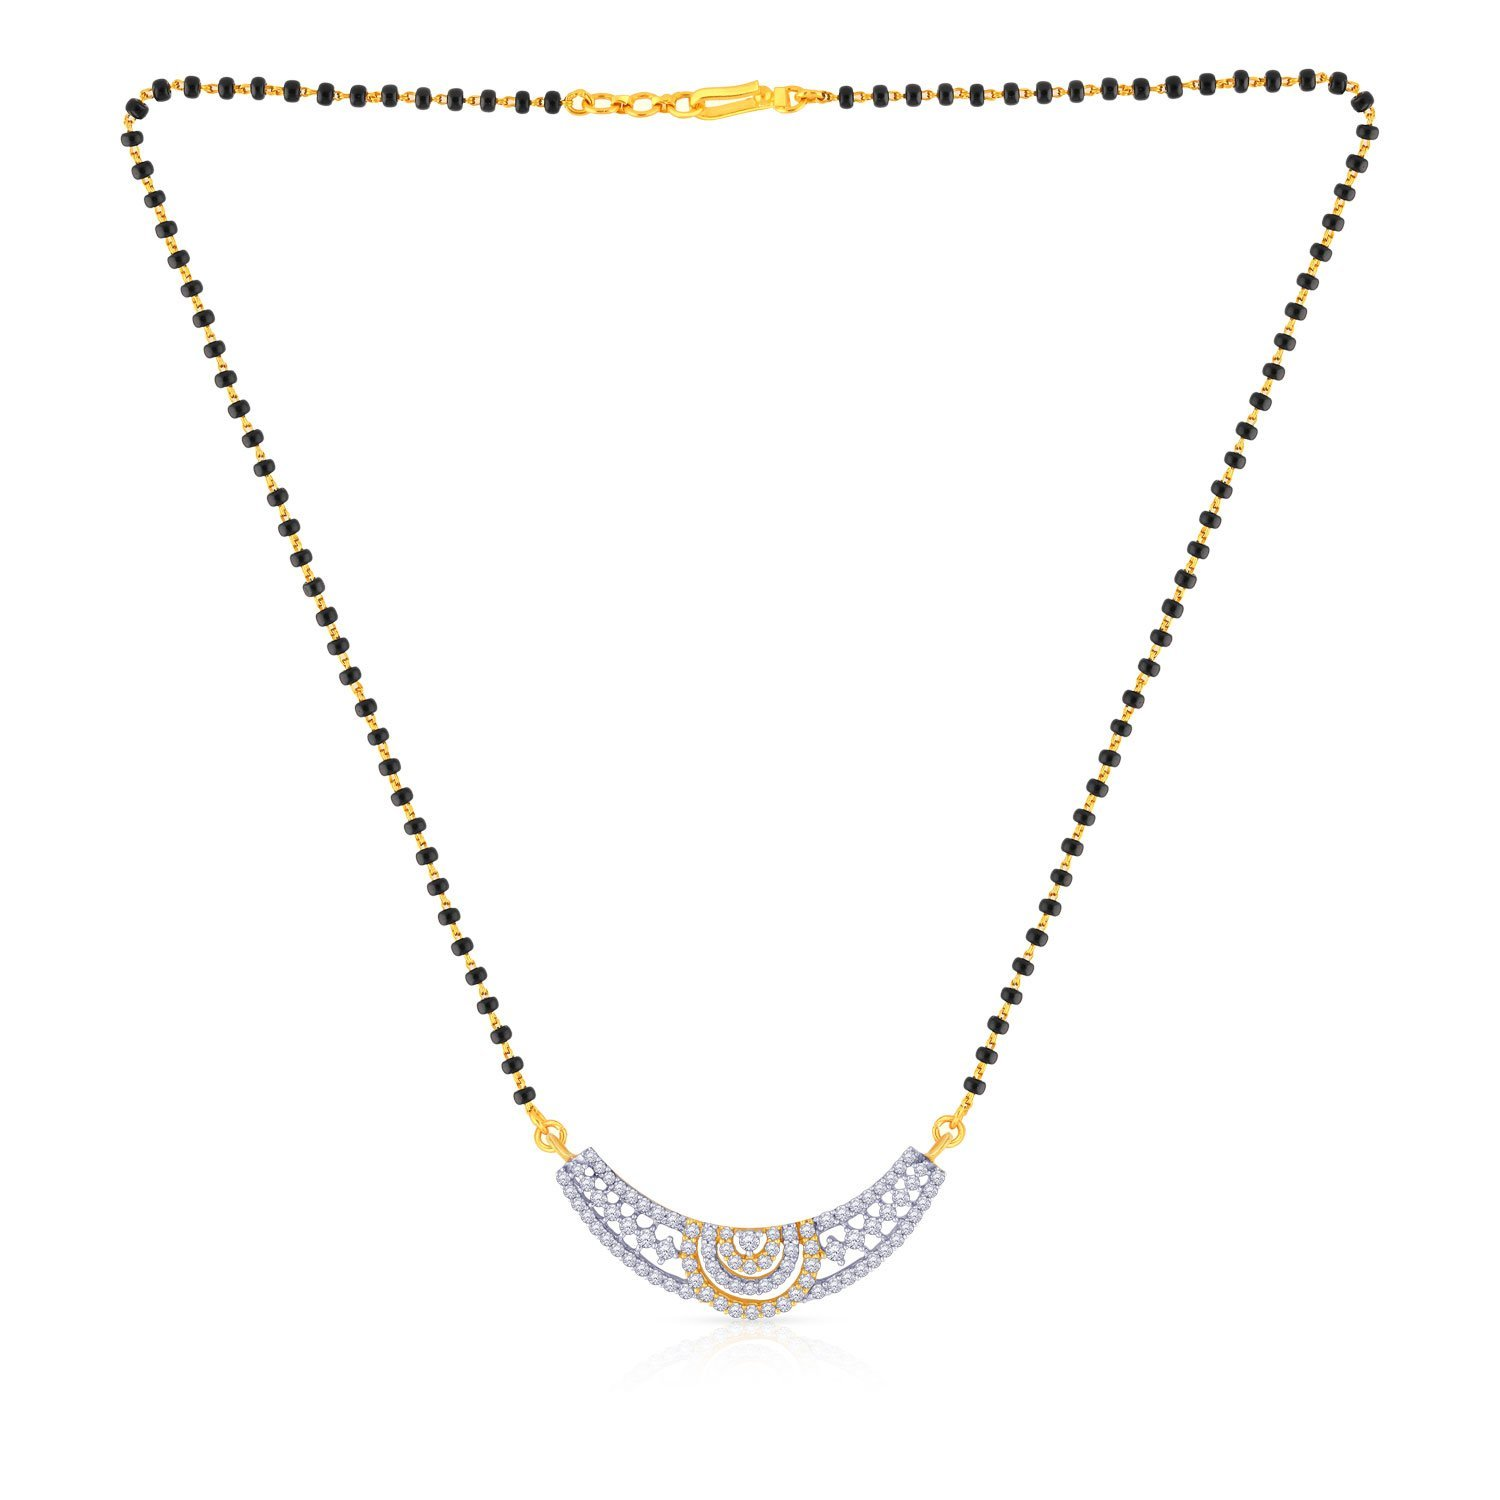 8bf4fd37c Buy Malabar Gold and Diamonds Mine Collection 18k (750) Yellow Gold and  Diamond Mangalsutra Necklace Online at Low Prices in India | Amazon  Jewellery Store ...